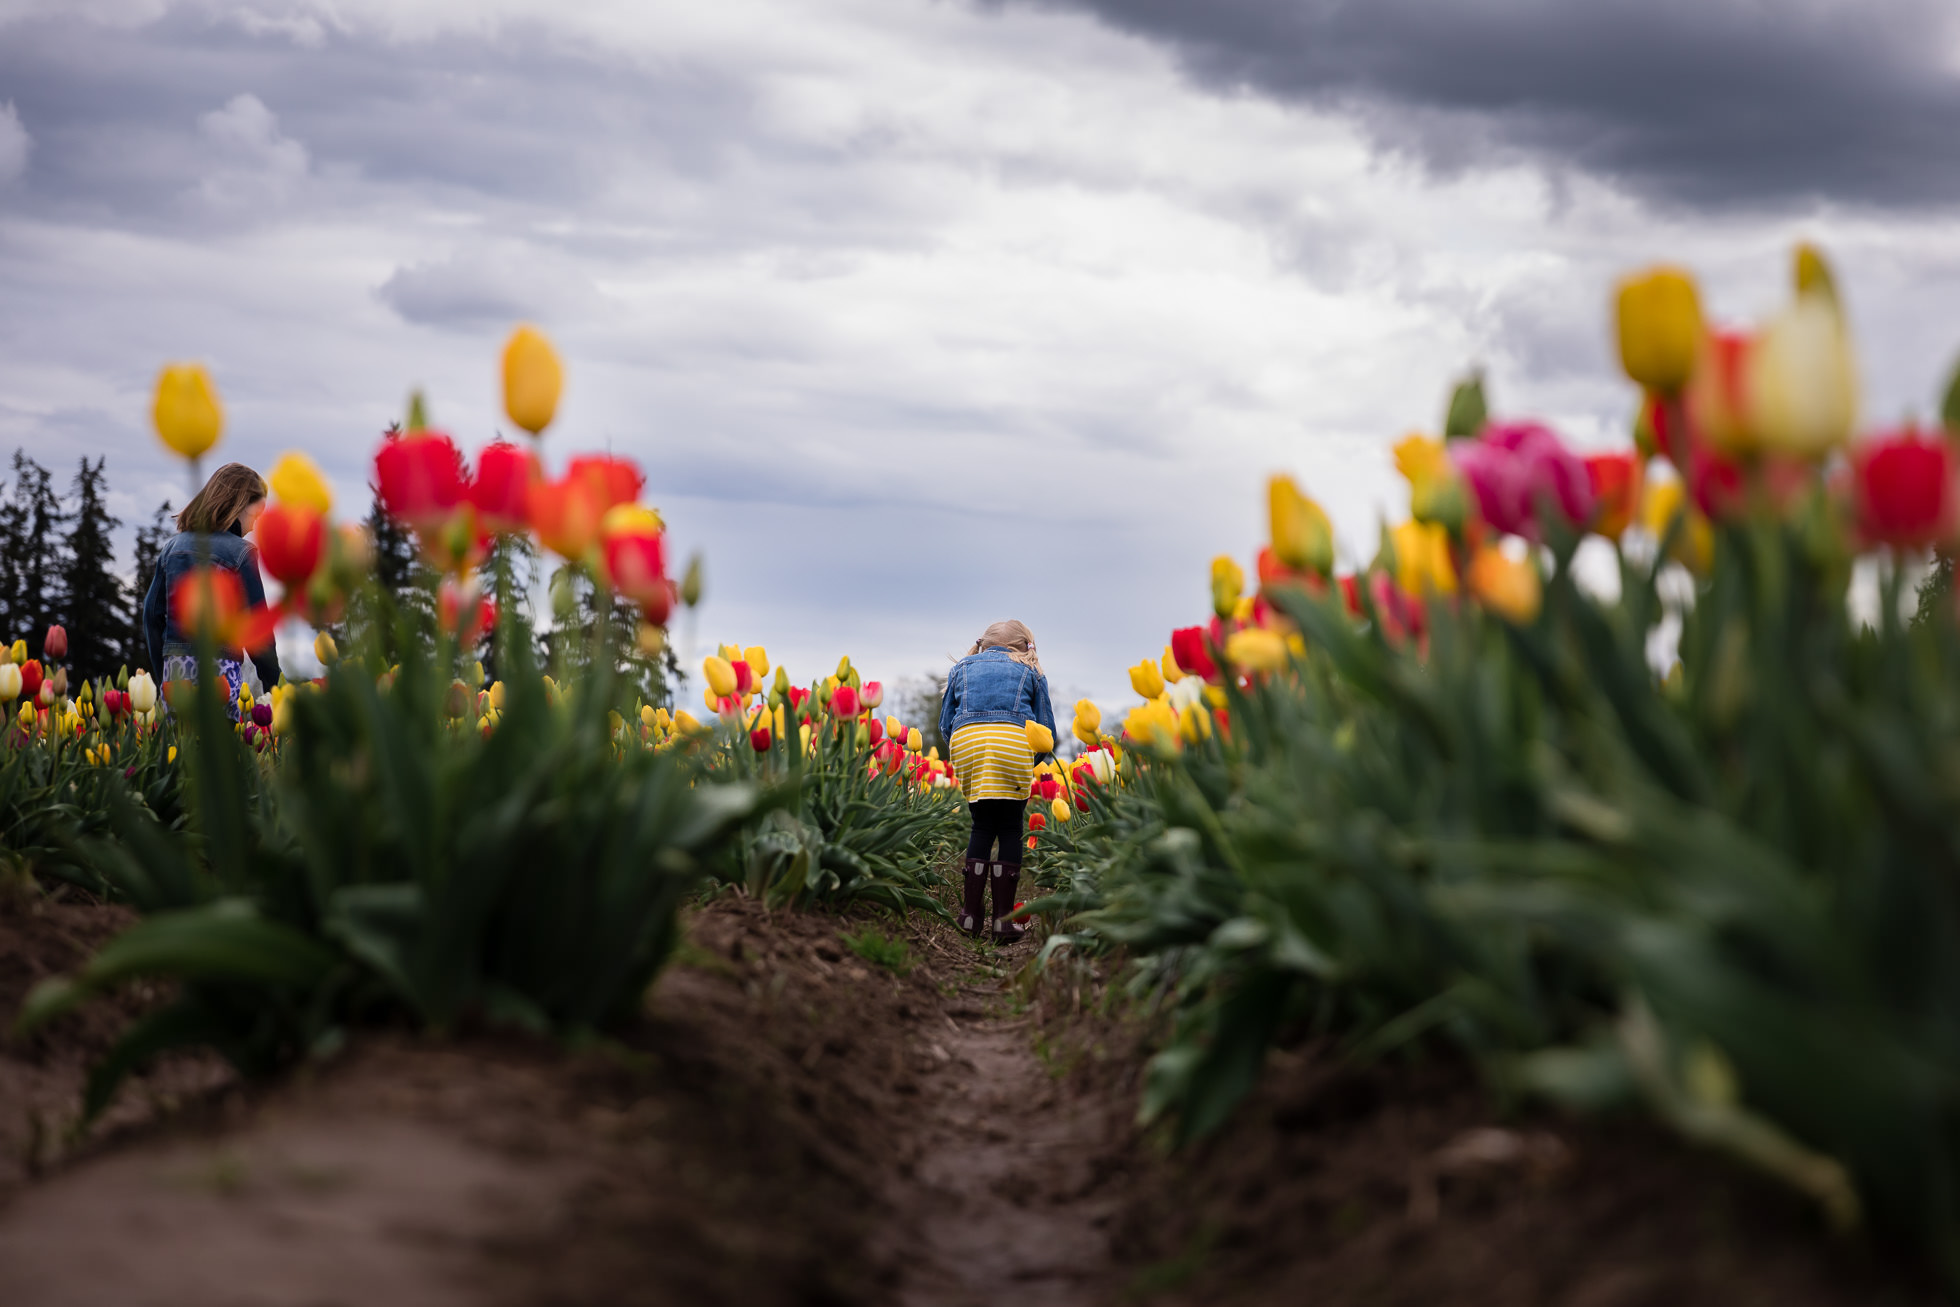 girl in the tulip field by rebecca hunnicutt farren premiere lifestyle childrens and family photographer in portland oregon and vancouver washington